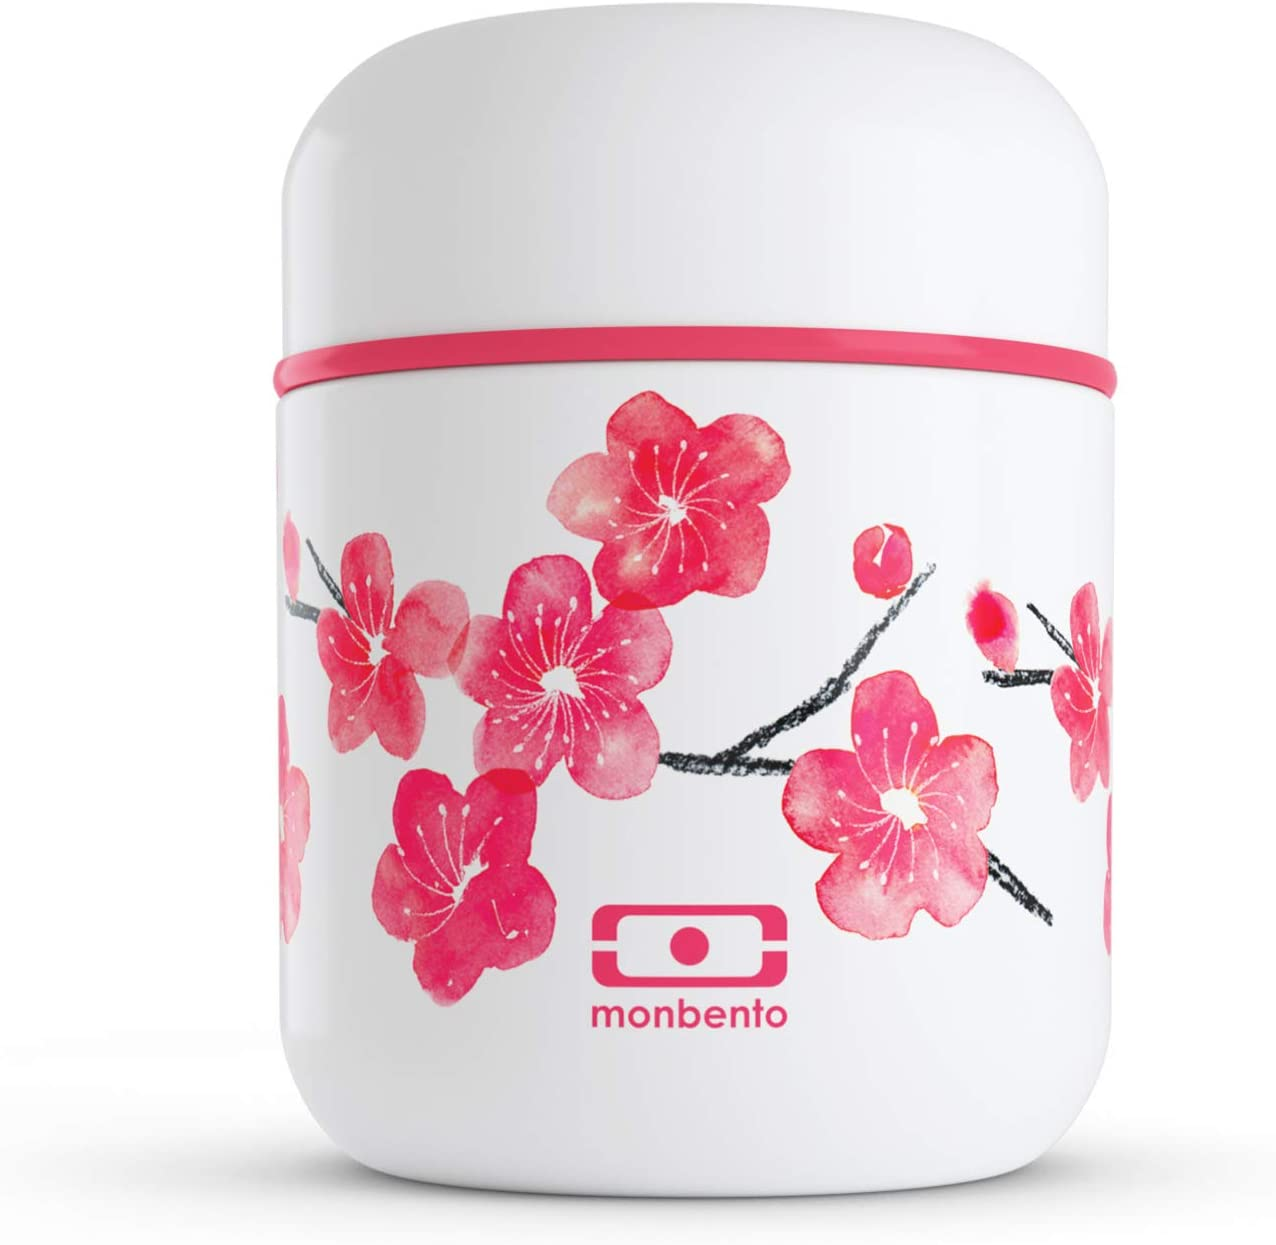 monbento - MB Capsule graphic Blossom pink flowers small insulated container - Food Jar - leakproof and insulated lunch box keeps food hot/cold - BPA free - Food grade safe